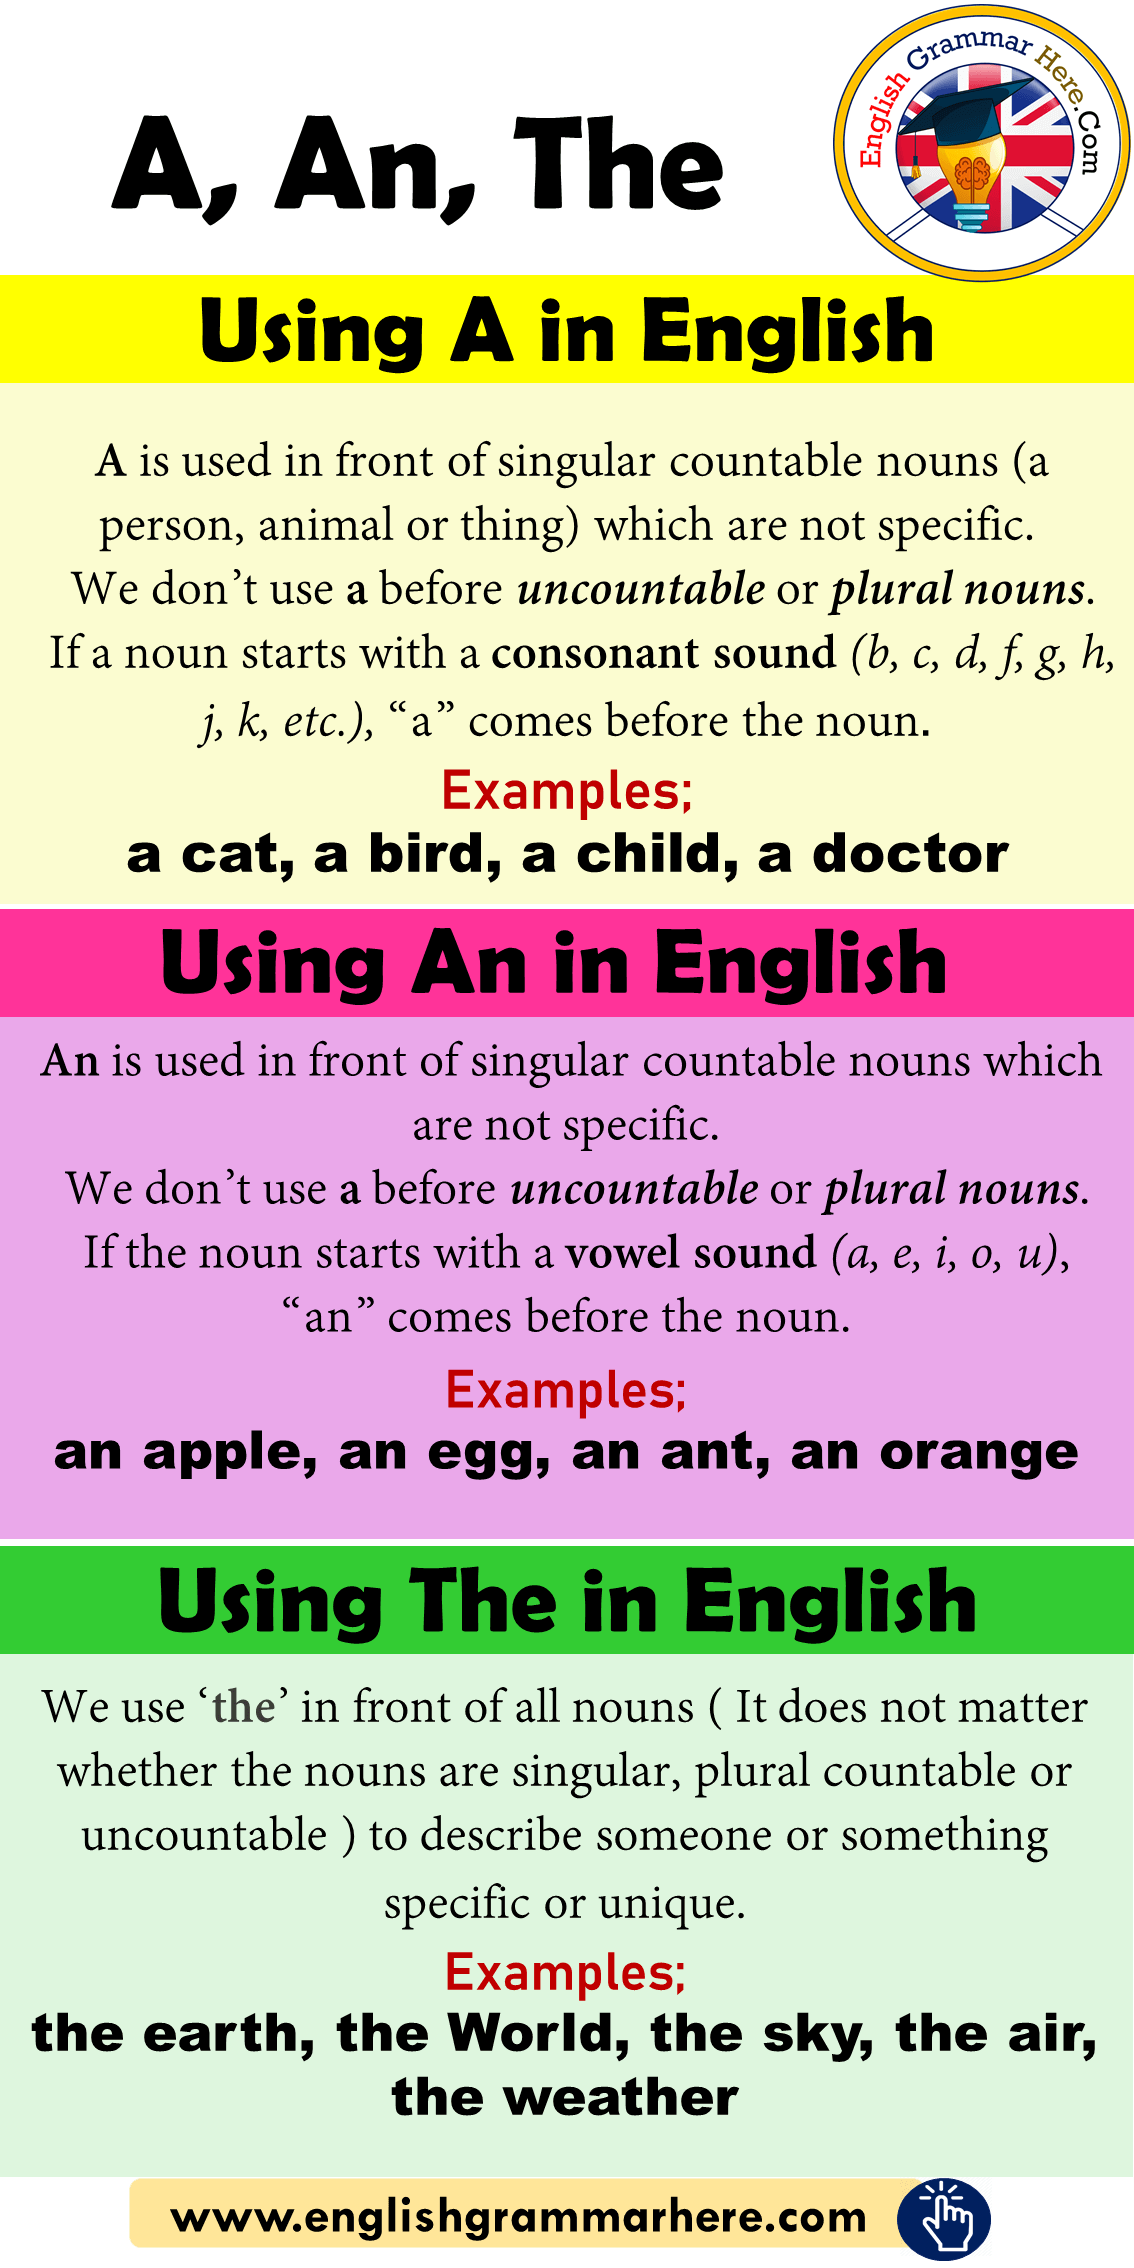 How to use A, An, The in English, Examples